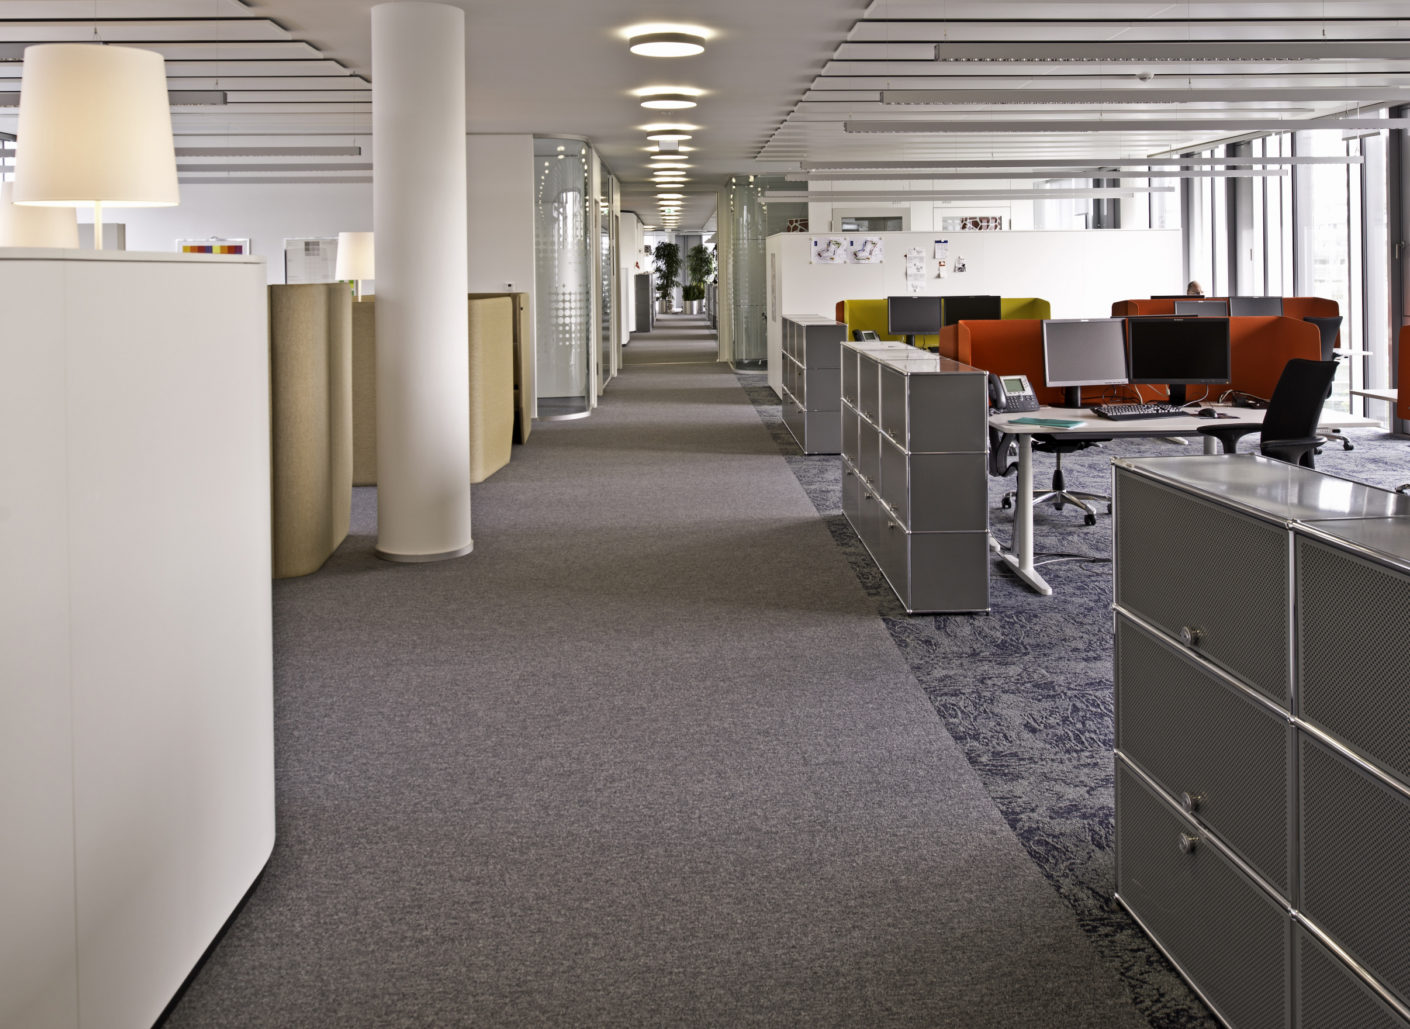 The floor system Nortec with carpeting was awarded Cradle to Cradle certification in Silver for its ecologically beneficial properties.